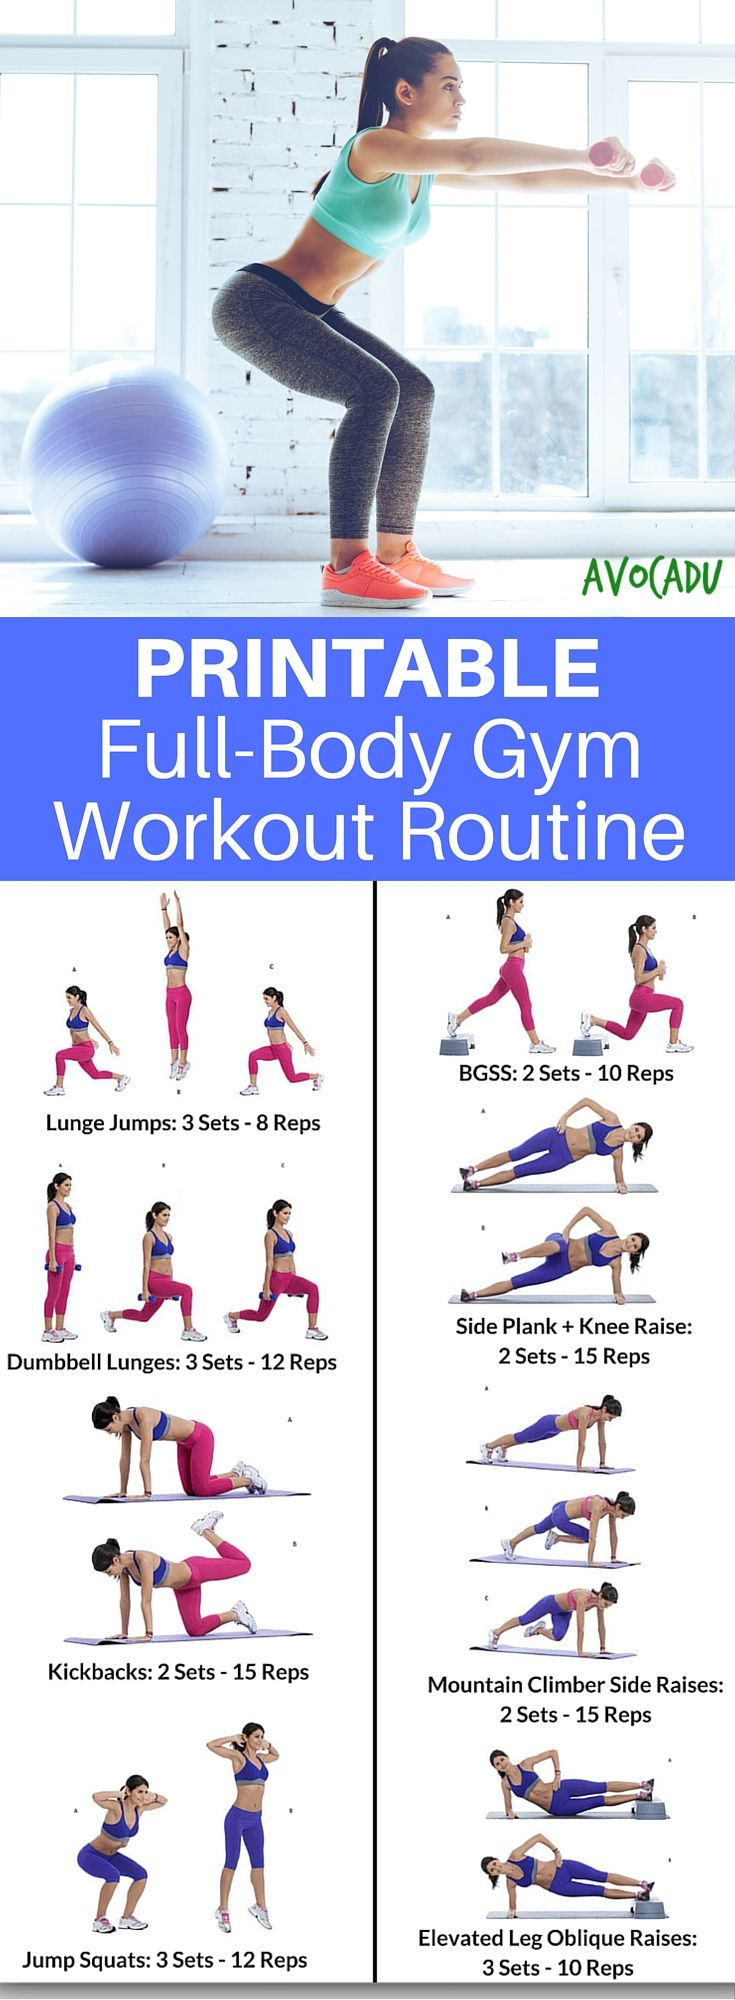 This printable workout routine comes with easy-to-follow workout cards and photo instructions for all of the exercises! It also includes beginner fitness tips to help you get results FAST! https://avocadu.clickfunnels.com/sales-pagenz5uremc